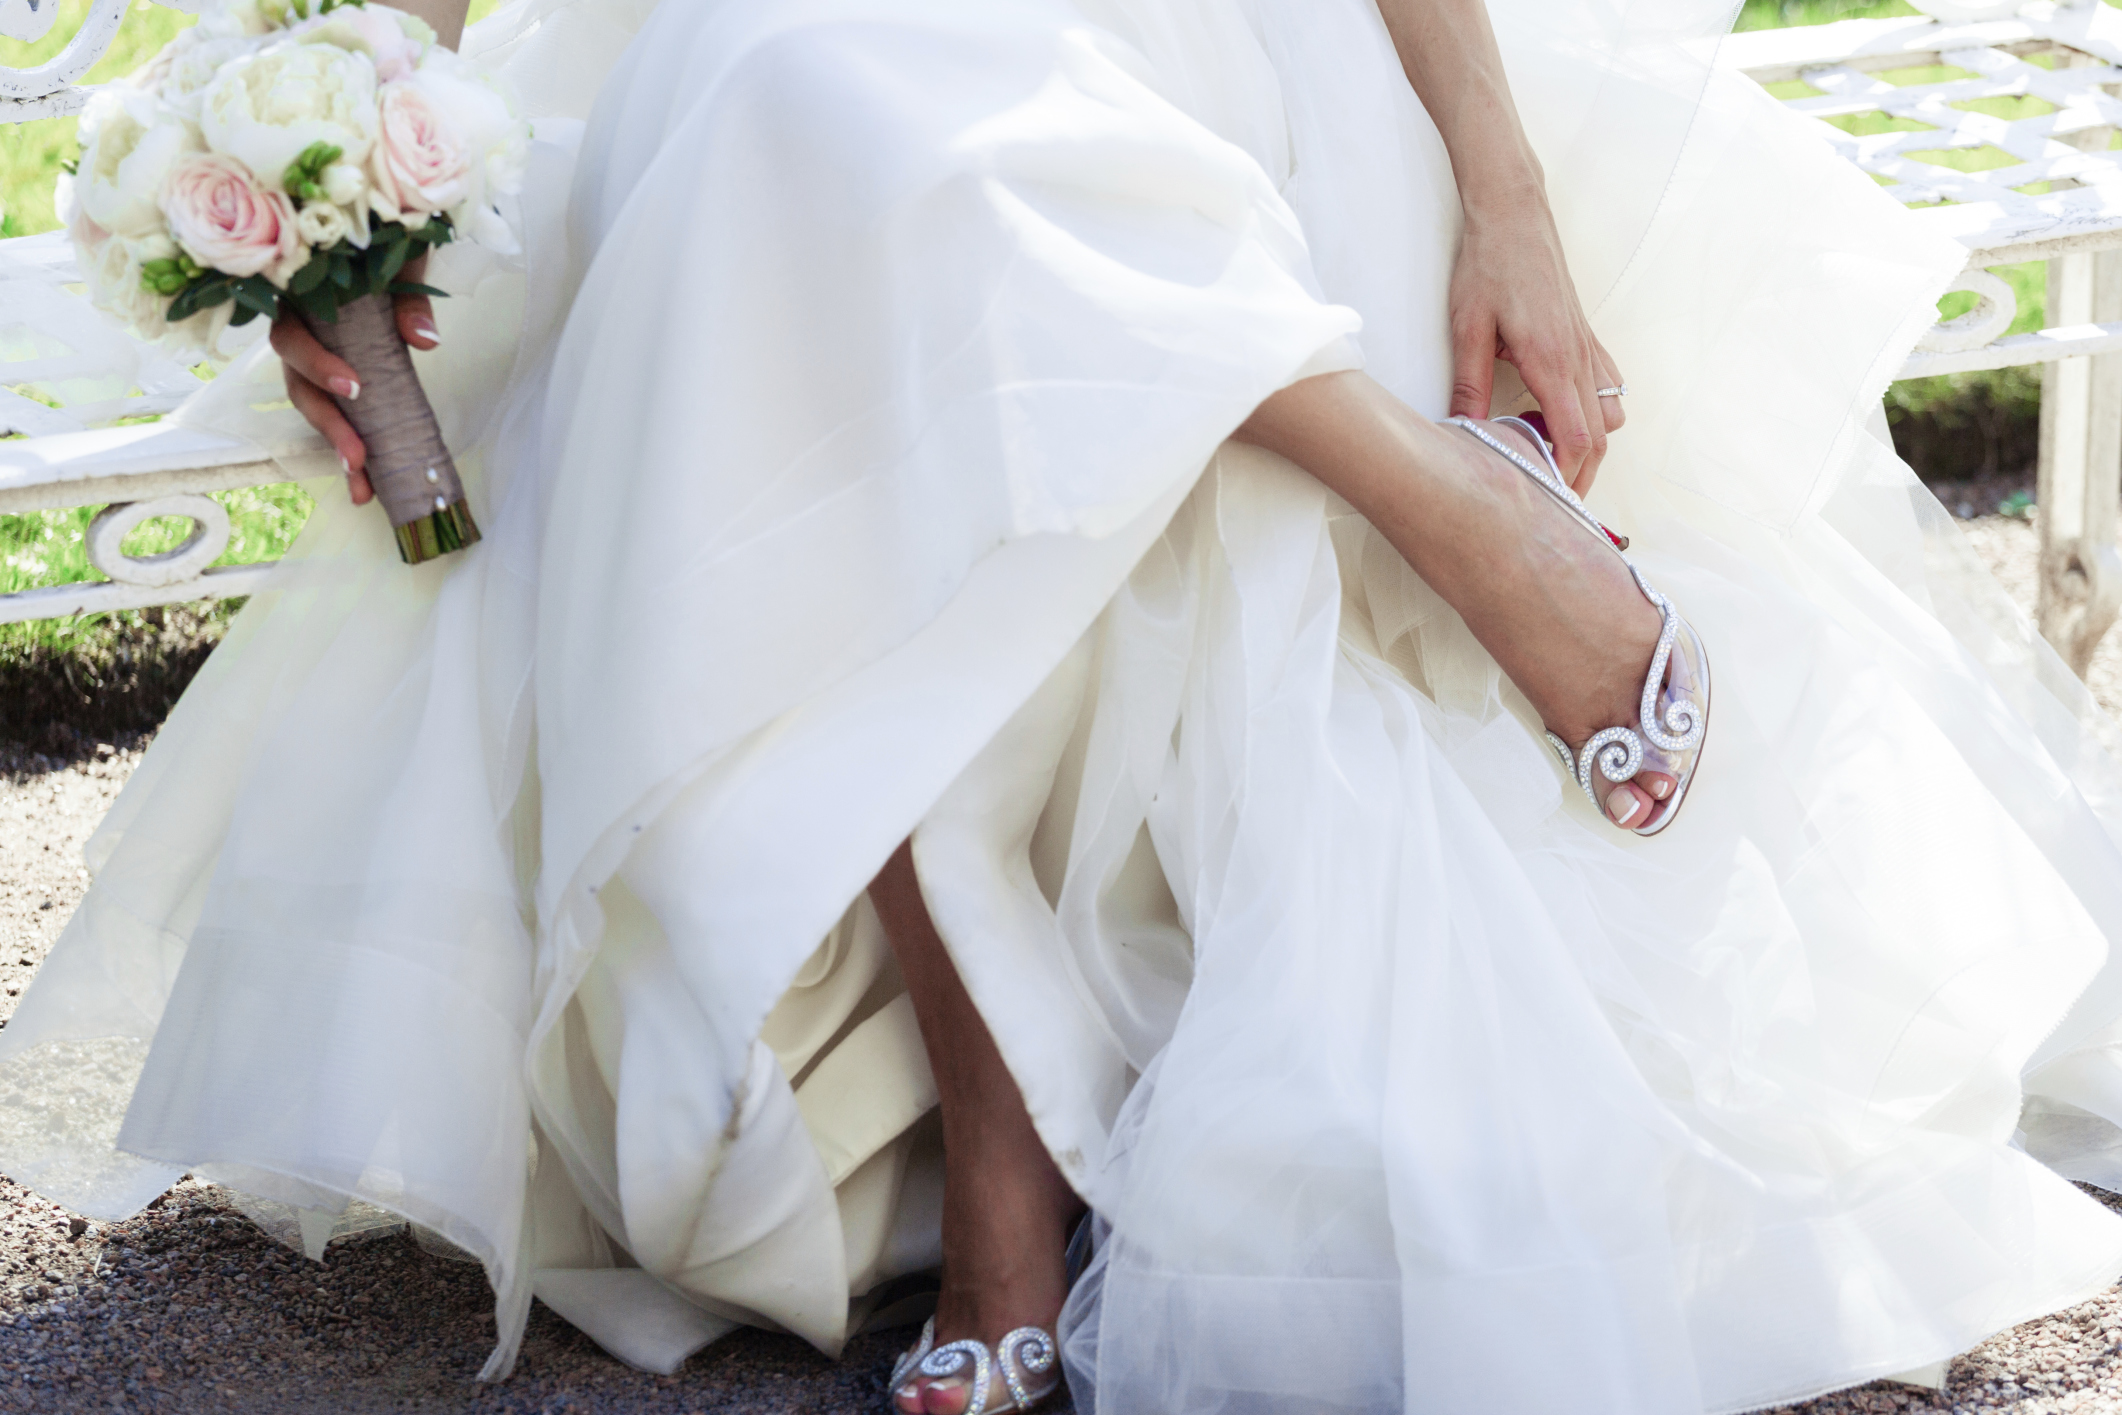 Wedding Dress Shoes.Finding The Perfect Shoes To Match Your Wedding Dress Articles